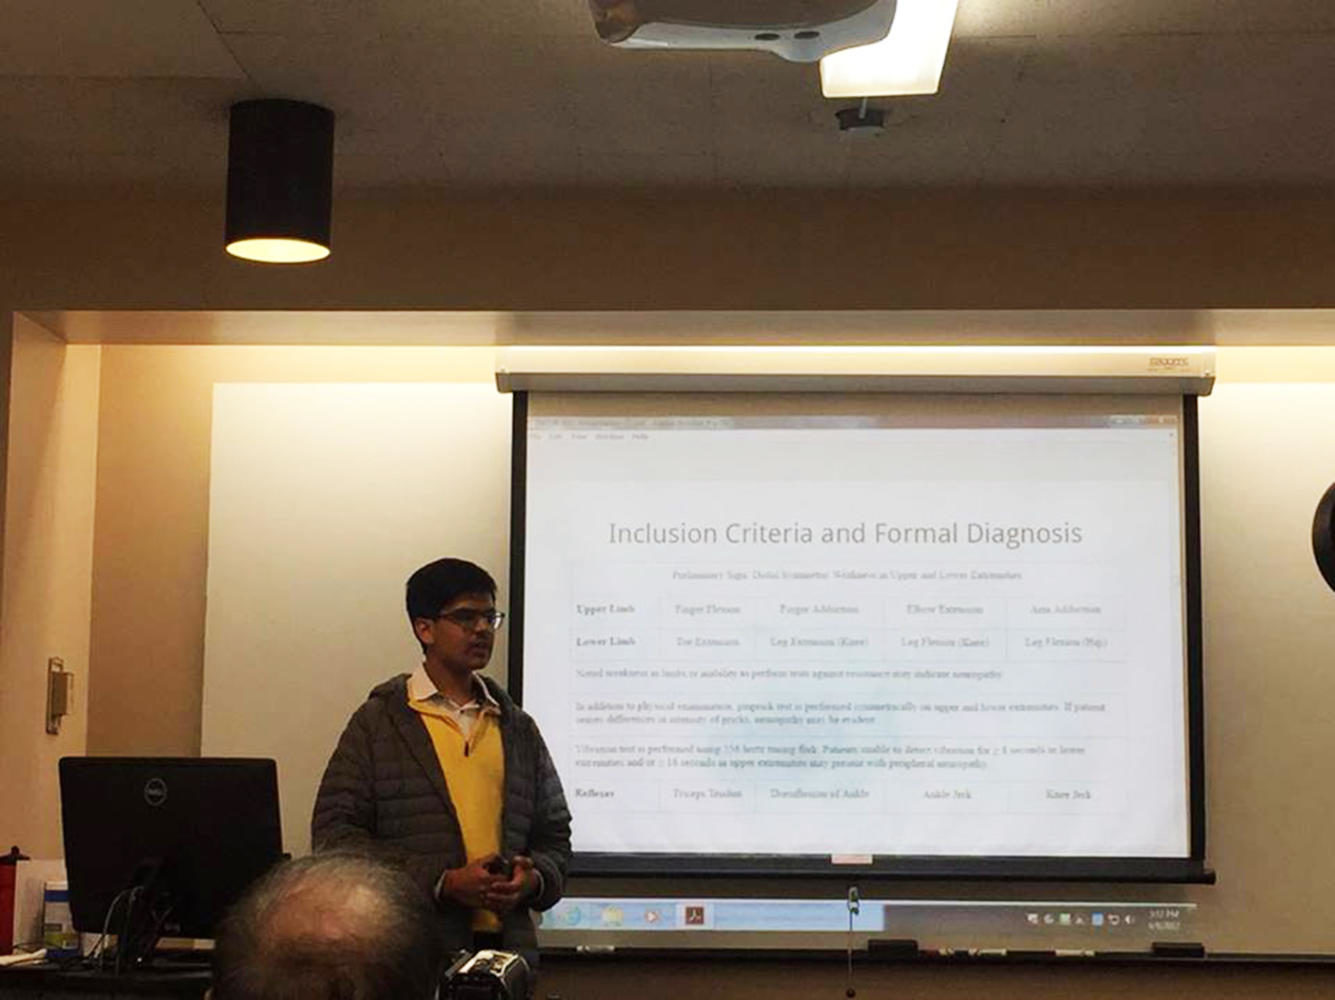 Anup+Challa+%2812%29+presents+his+research+on+orthostatic+hypotension+at+NCUR.